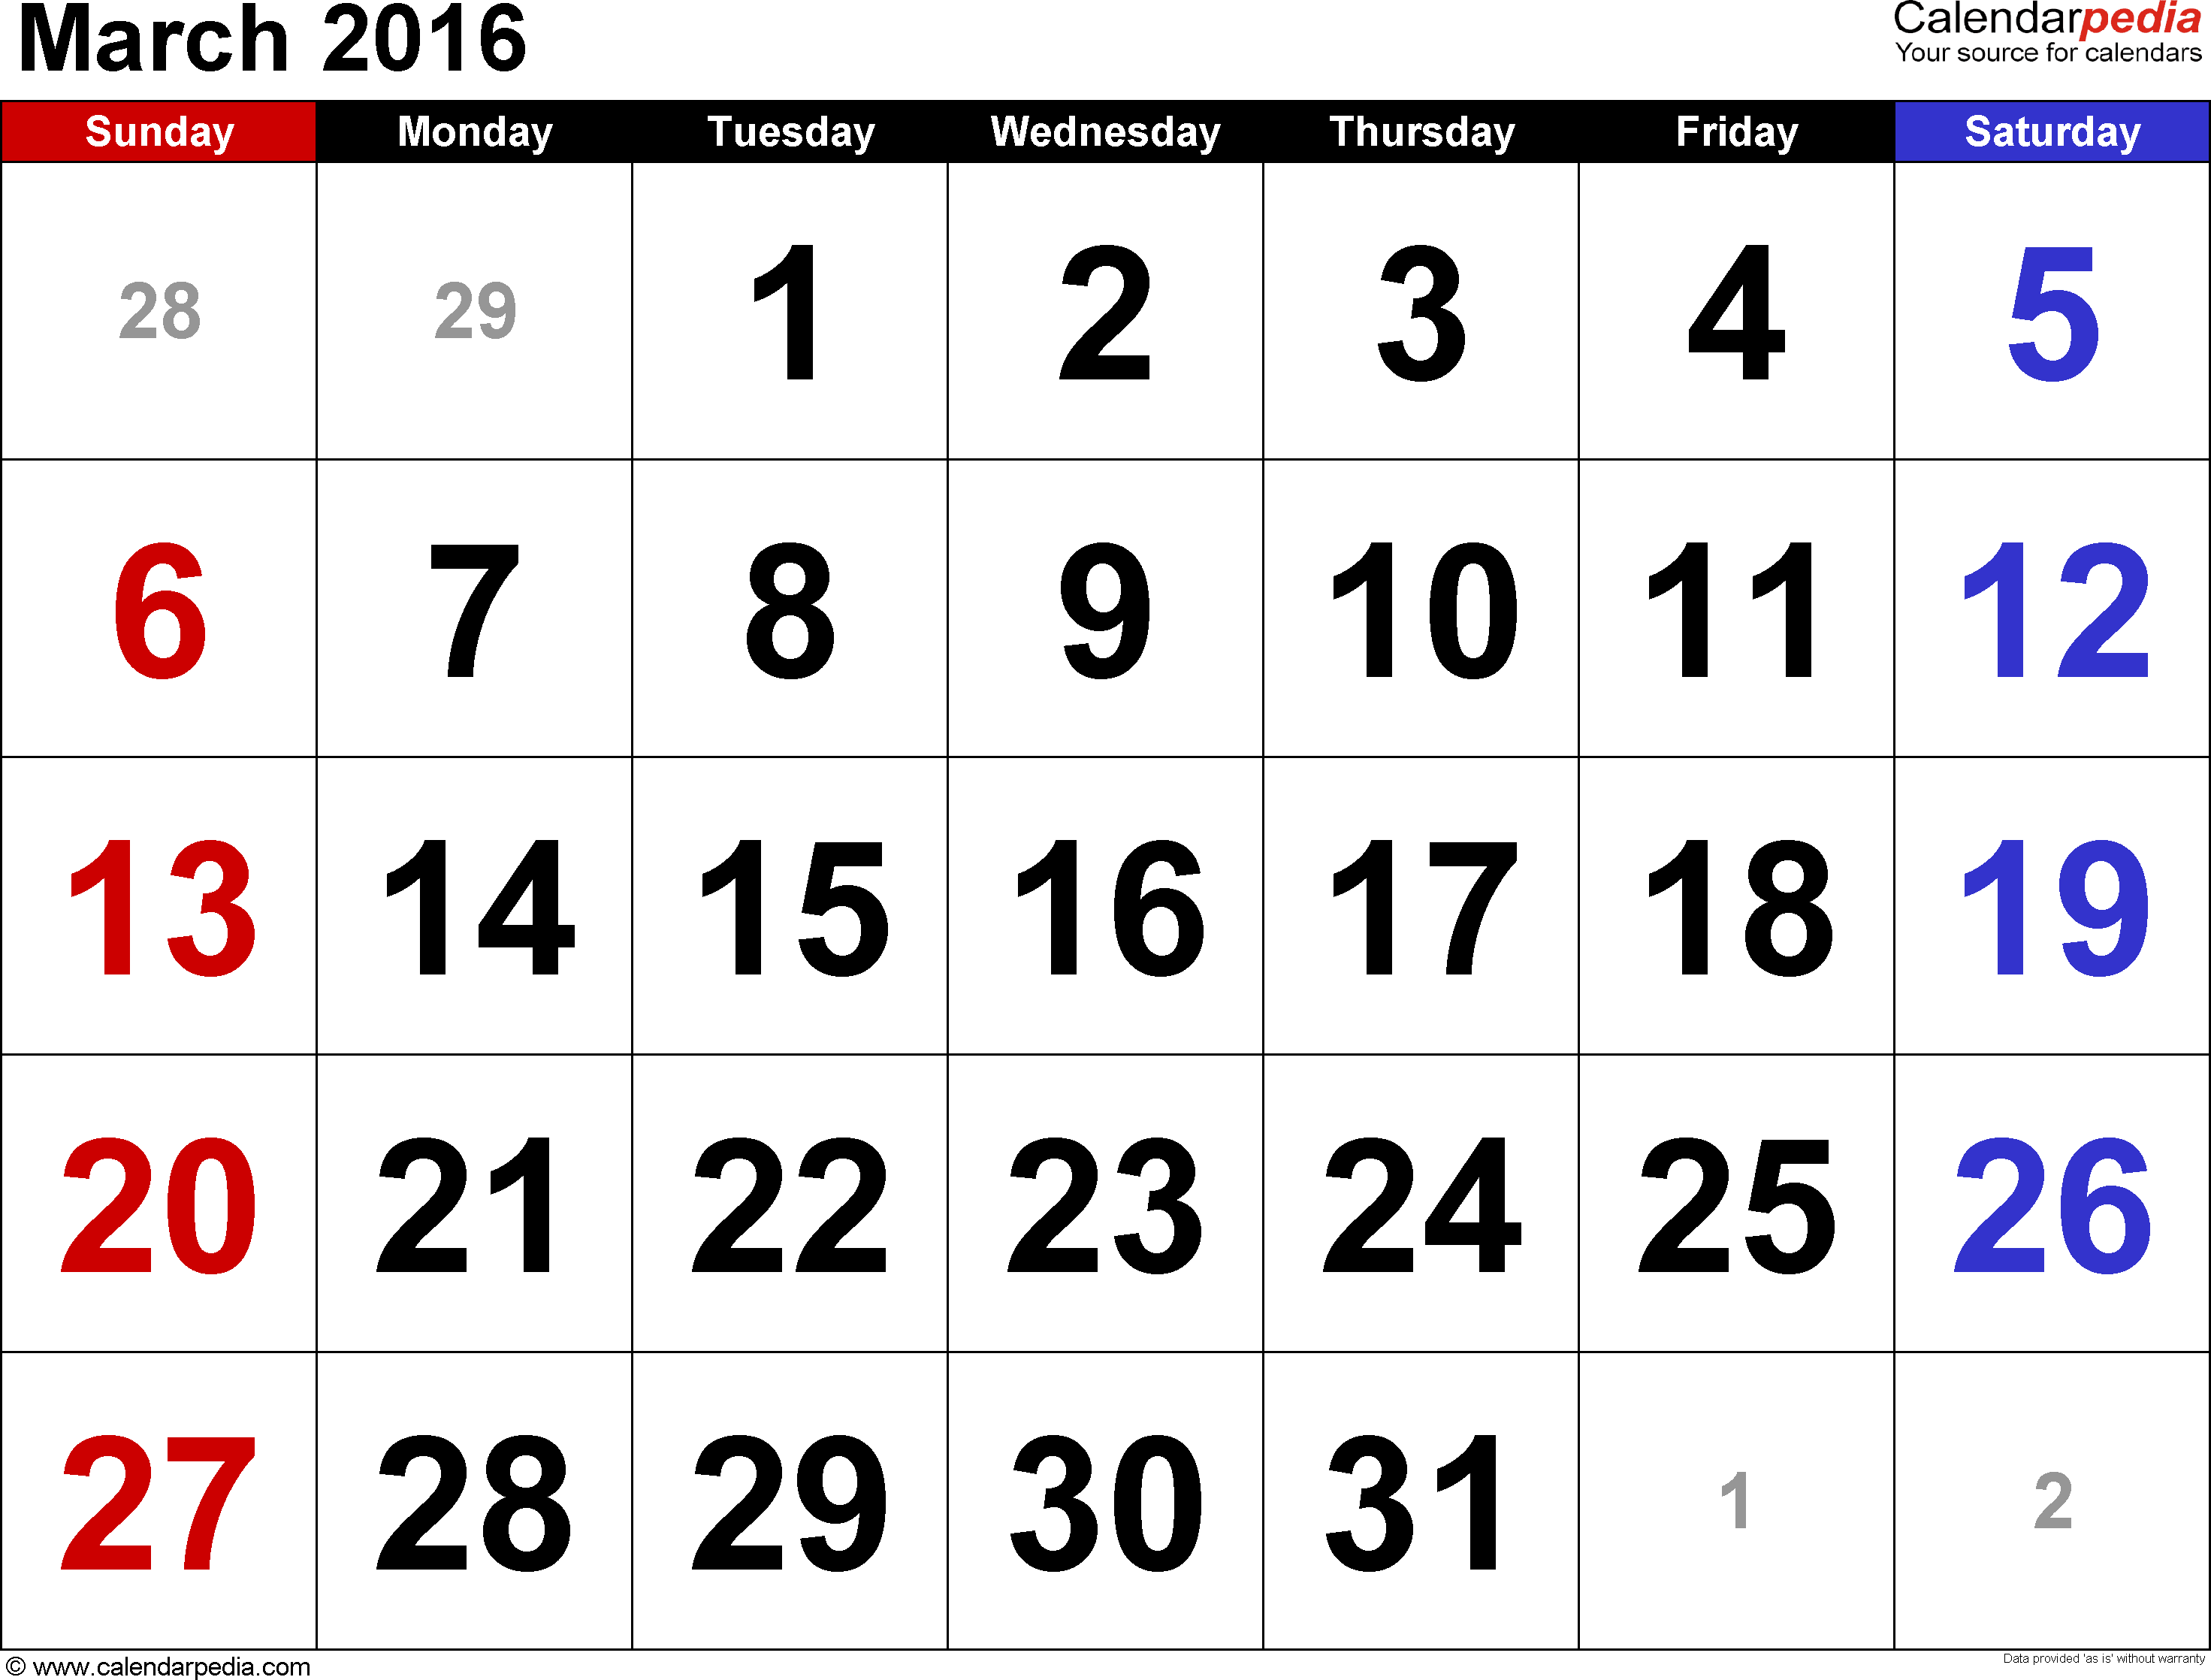 March 2016 calendar, landscape orientation, large numerals, available as printable templates for Word, Excel and PDF